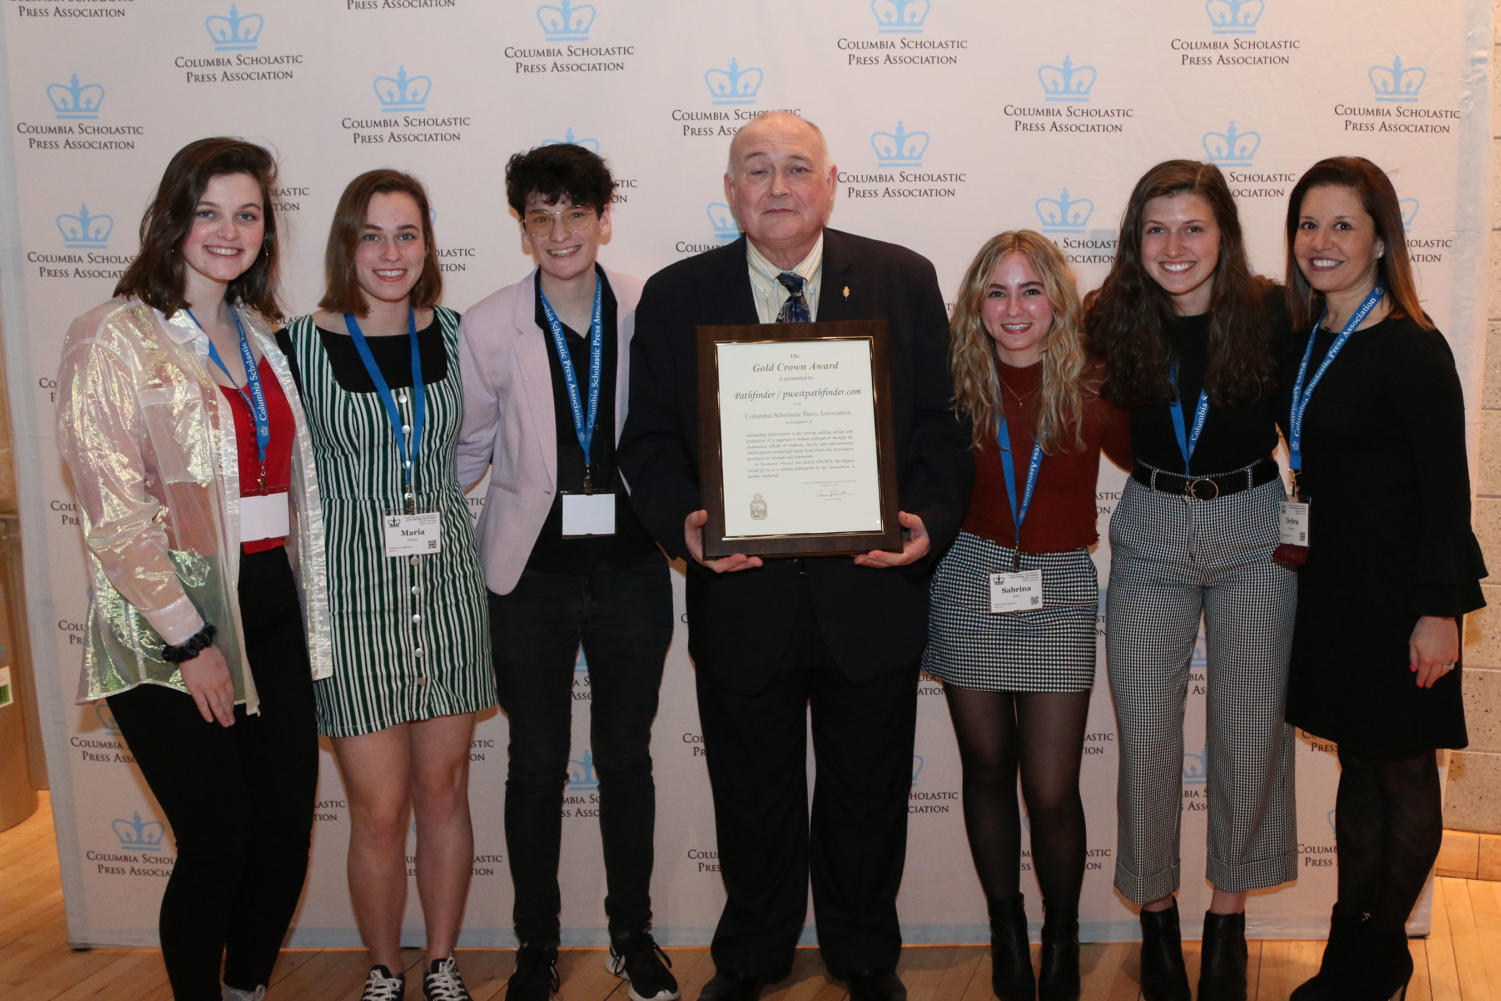 "Pathfinder editors junior Lydia Roseman, seniors Maria Newton and Dani Fischer and juniors Sabrina Bohn and Emma Caplinger, along with Journalism Adviser Debra Klevens take a photo with Edmund J. Sullivan, the Executive Director of the Columbia Scholastic Press Association, after receiving a Gold Crown award. In 2018, the Pathfinder won a CSPA Silver Crown Award. ""It was an incredible experience to be in a room with so many of the schools that we look up to and draw inspiration from,"" senior and Managing Editor-in-Chief Dani Fischer said."